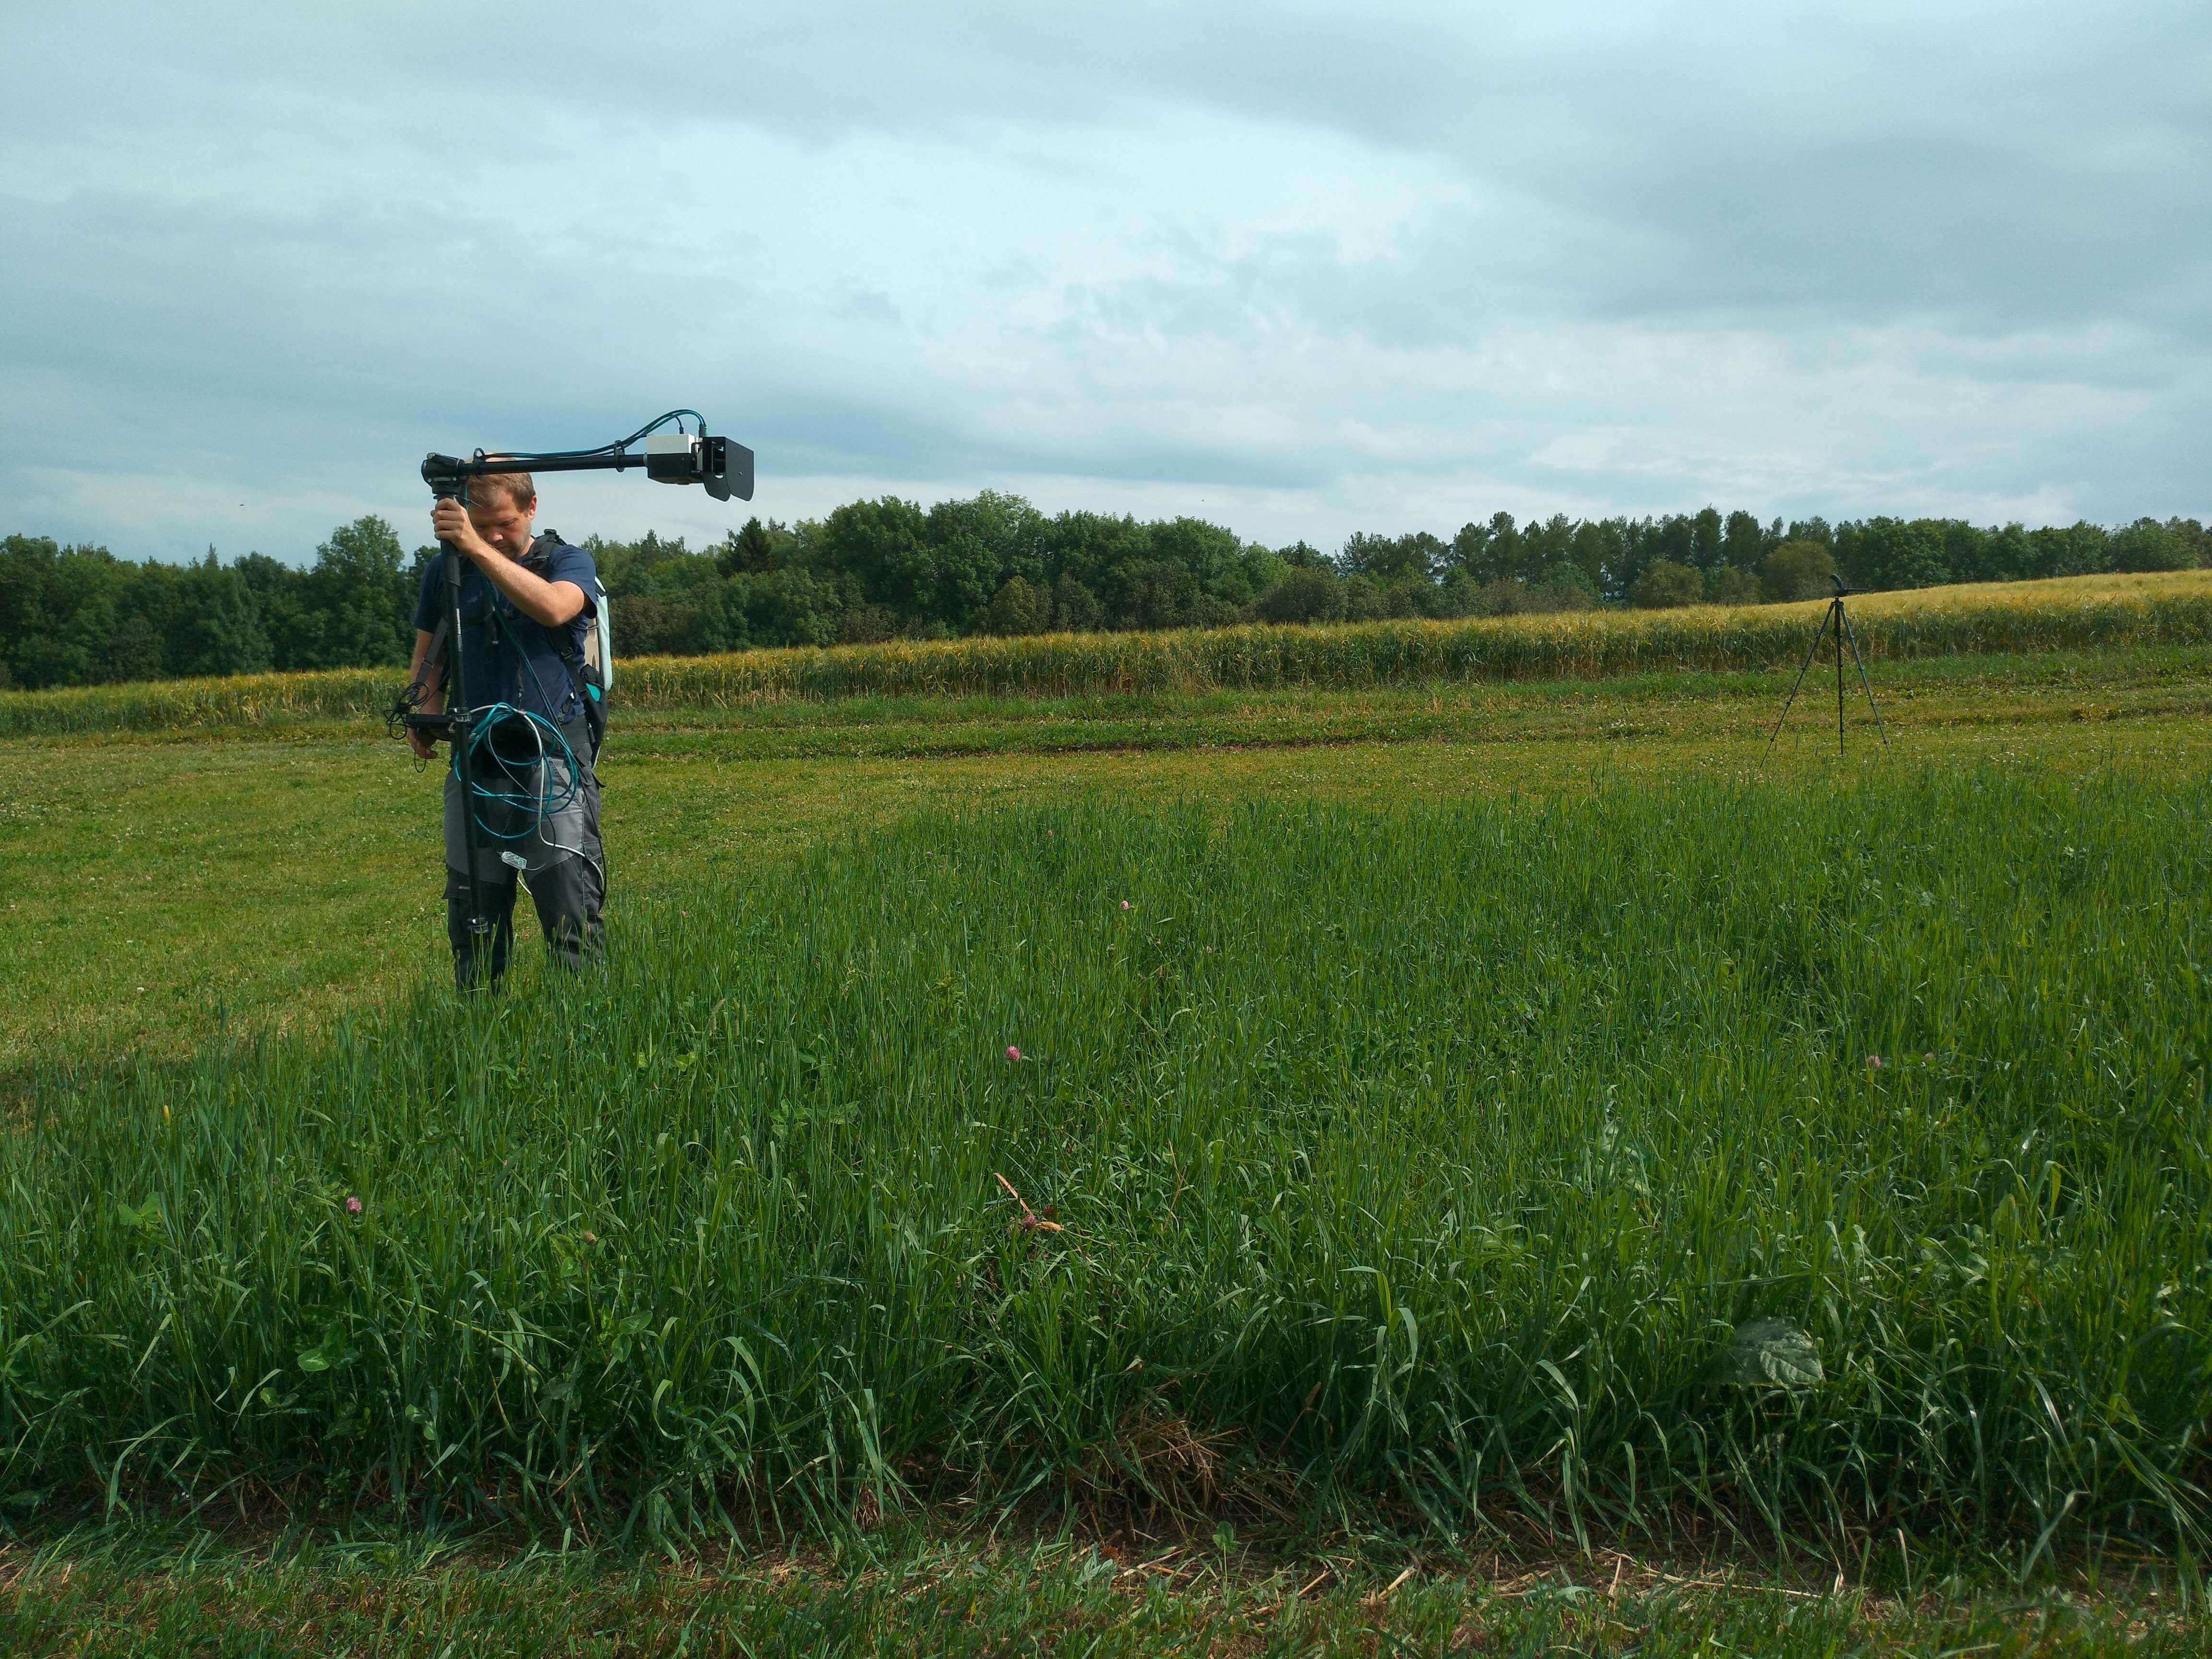 Measuring the reflectance and canopy density in a field trial